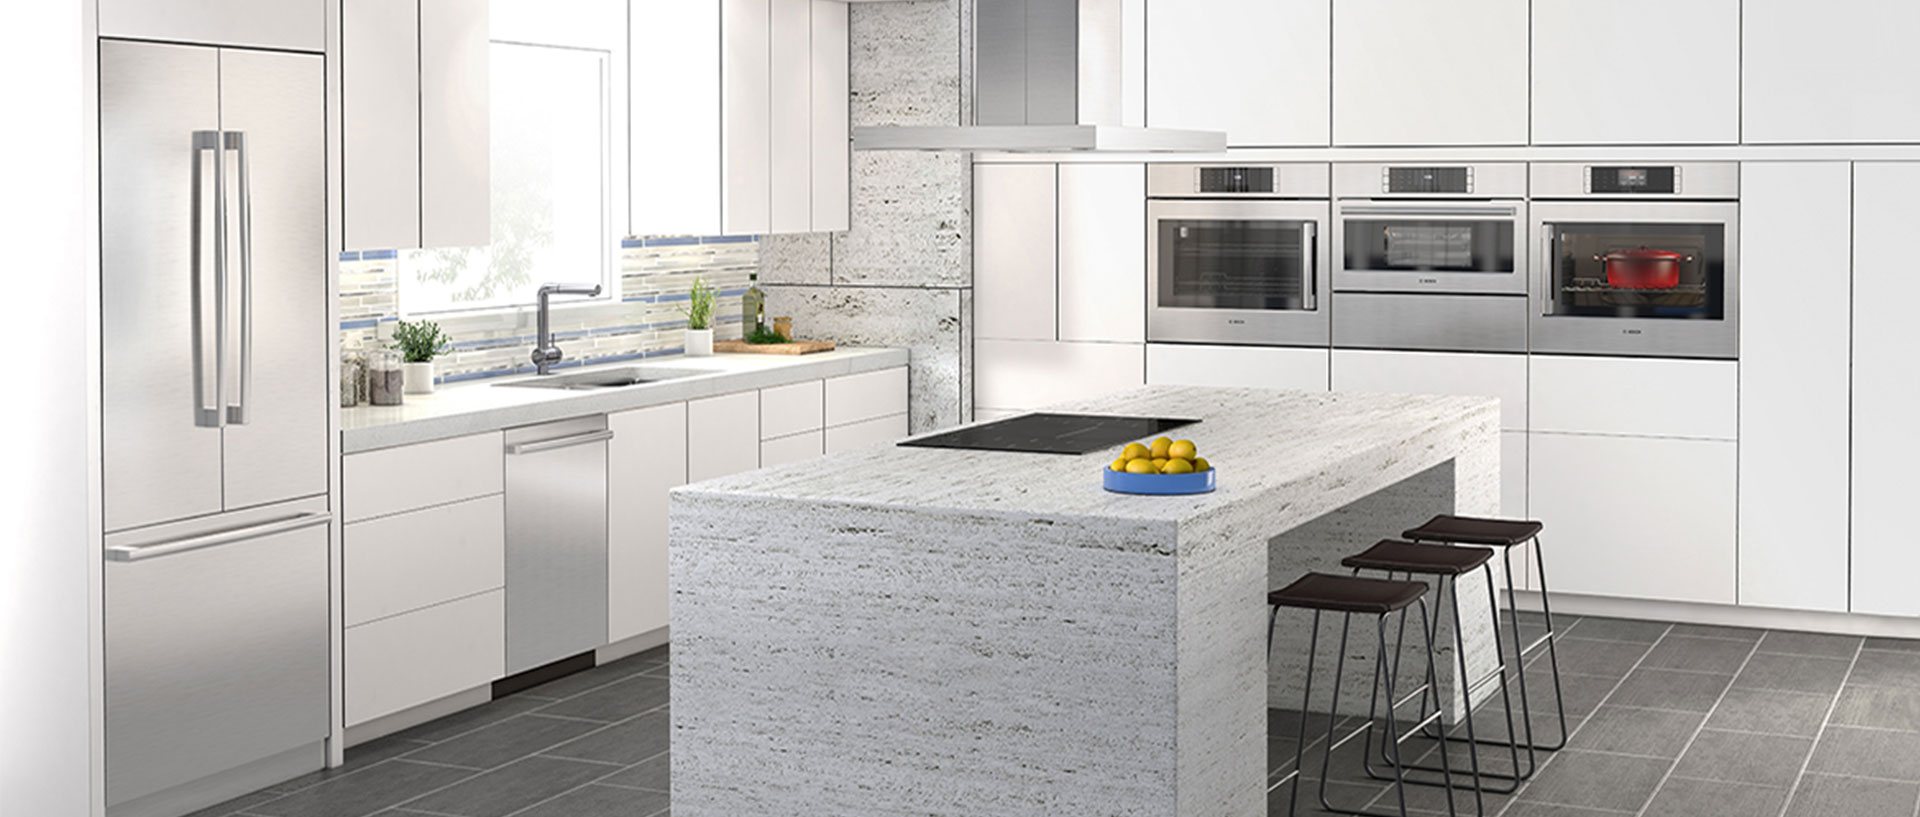 Appliances Packages Sale How To Build A Luxury Kitchen For Less Appliances Connection